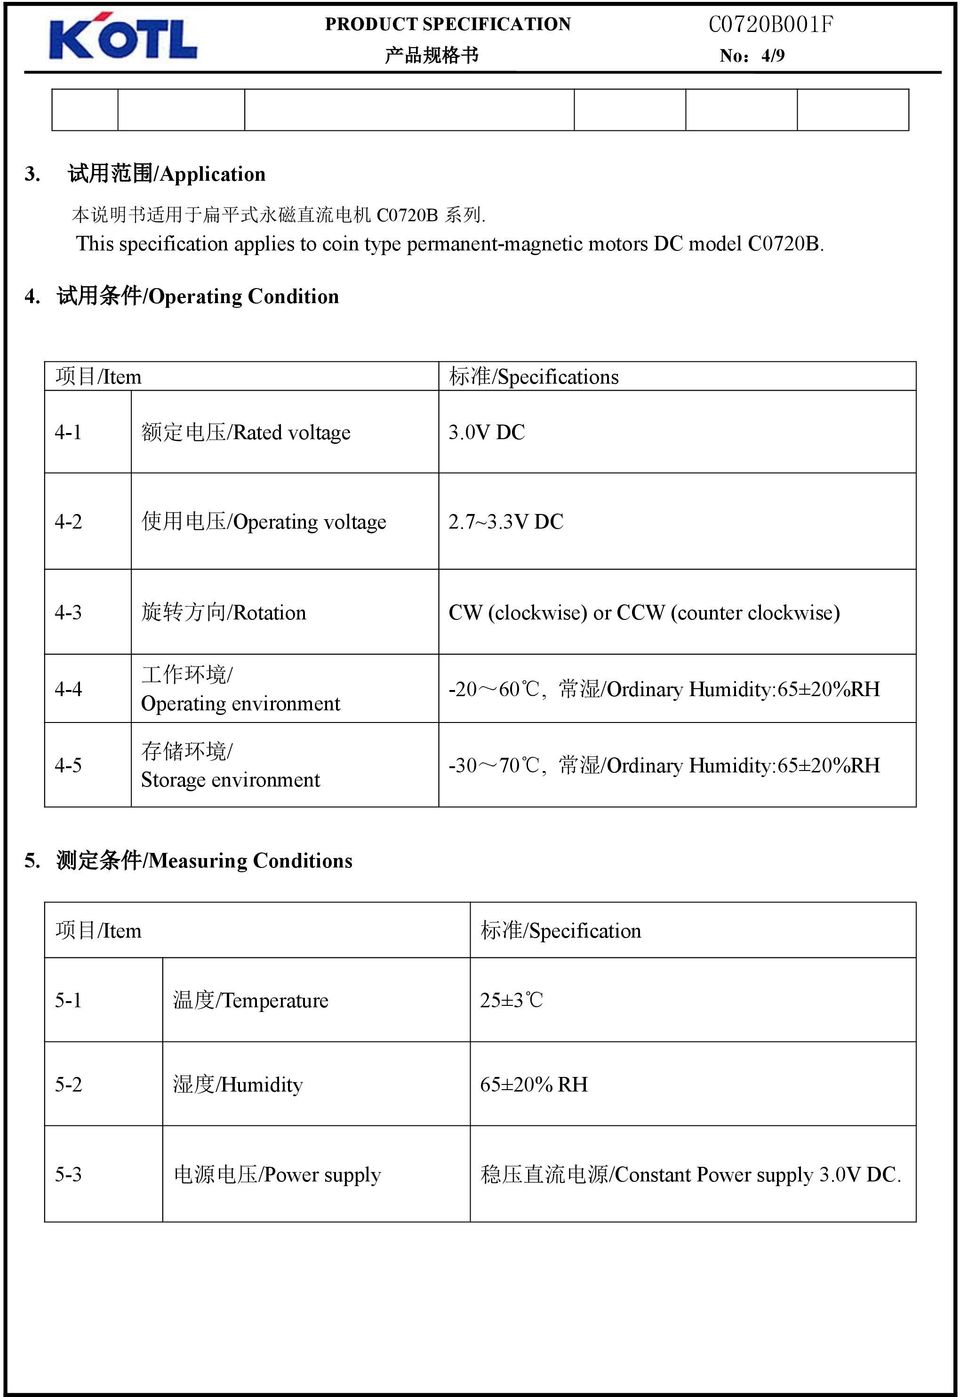 3V DC 4-3 旋 转 方 向 /Rotation CW (clockwise) or CCW (counter clockwise) 4-4 4-5 工 作 环 境 / Operating environment 存 储 环 境 / Storage environment -20~60, 常 湿 /Ordinary